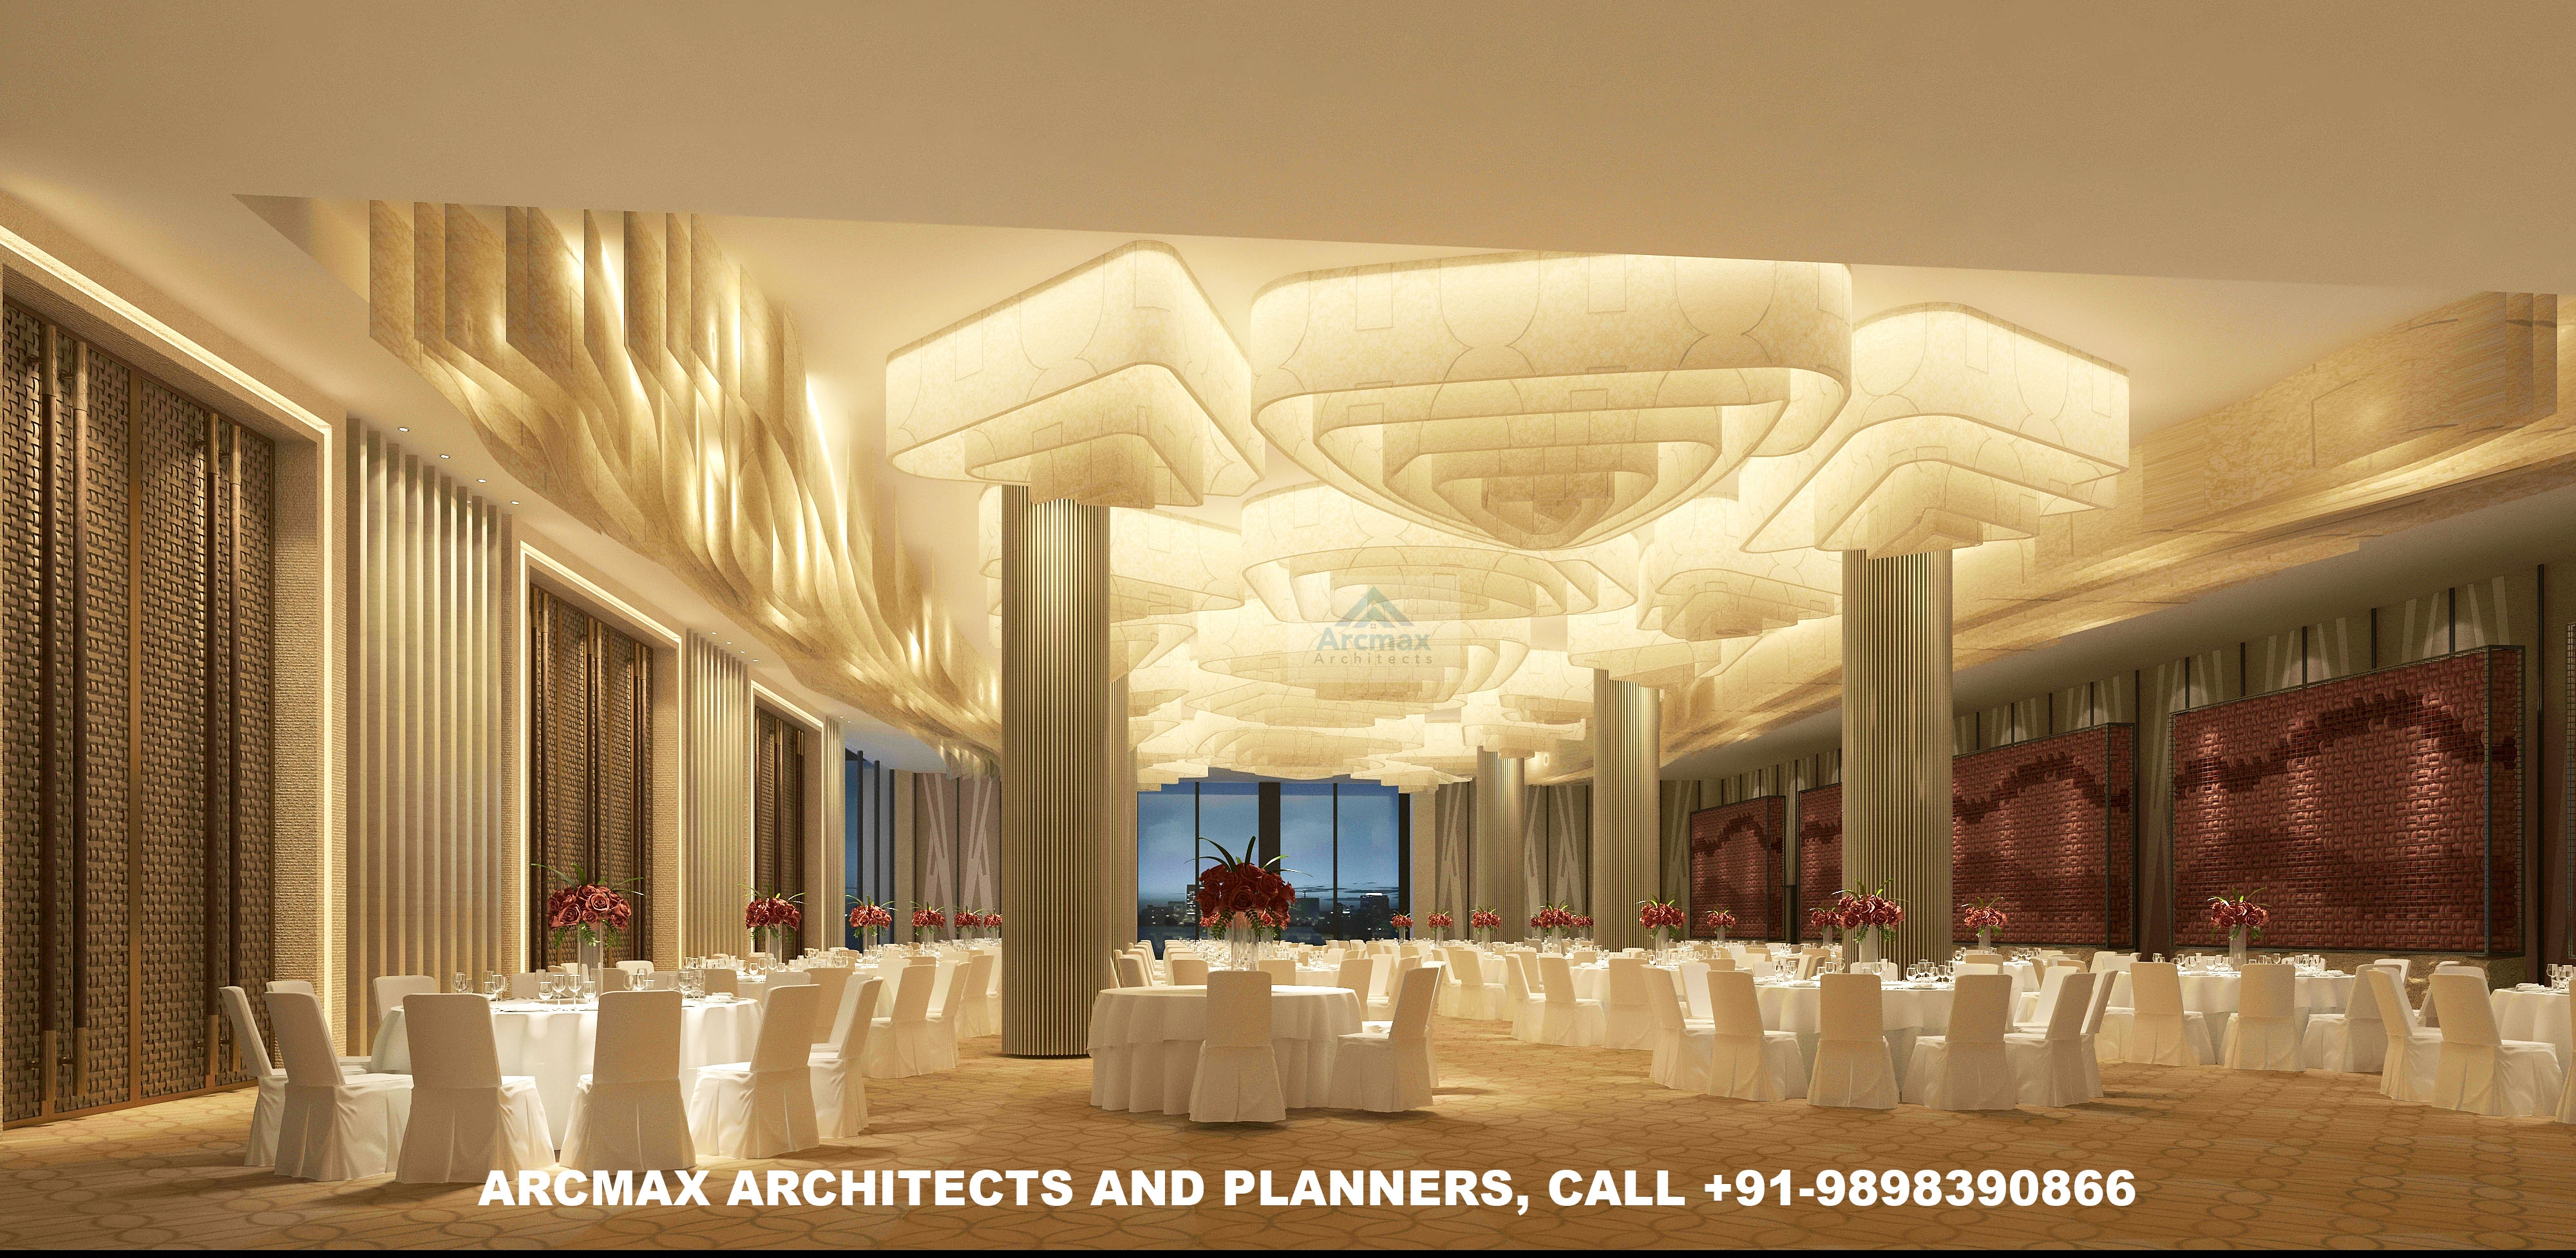 Best Architects For Banquet Hall Design In Pune Arcmax